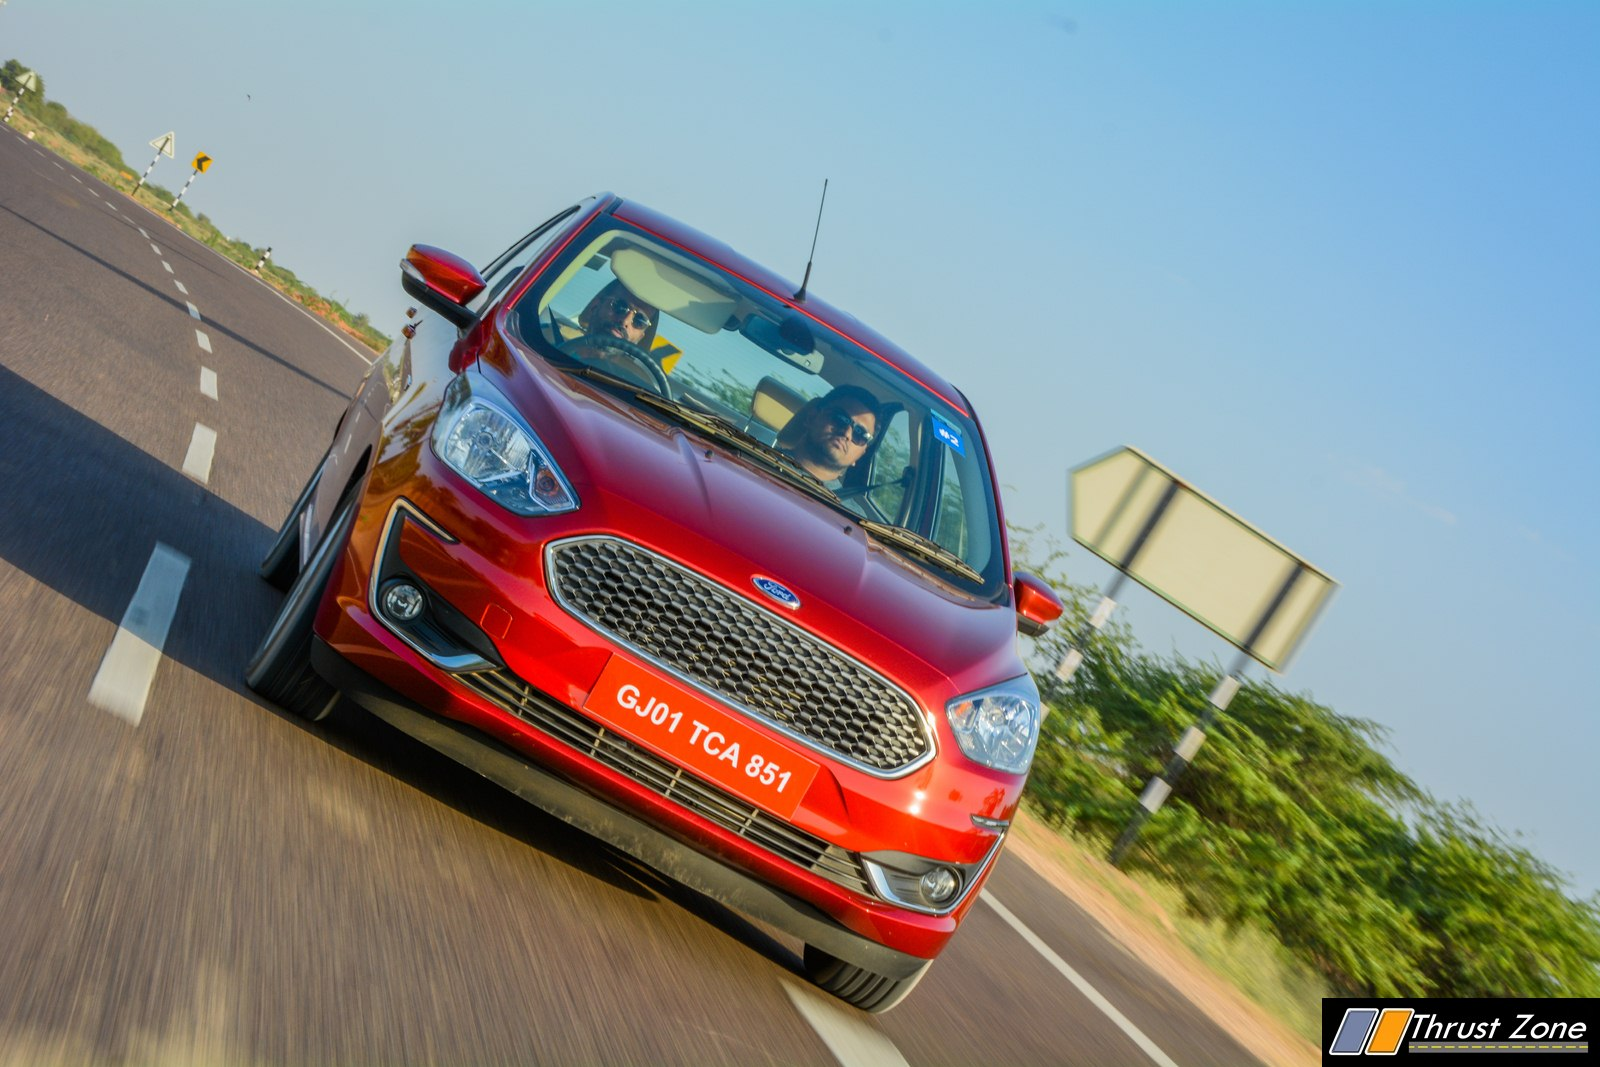 https://www.thrustzone.com/wp-content/uploads/2018/10/2018-Ford-Aspire-facelift-review-18.jpg